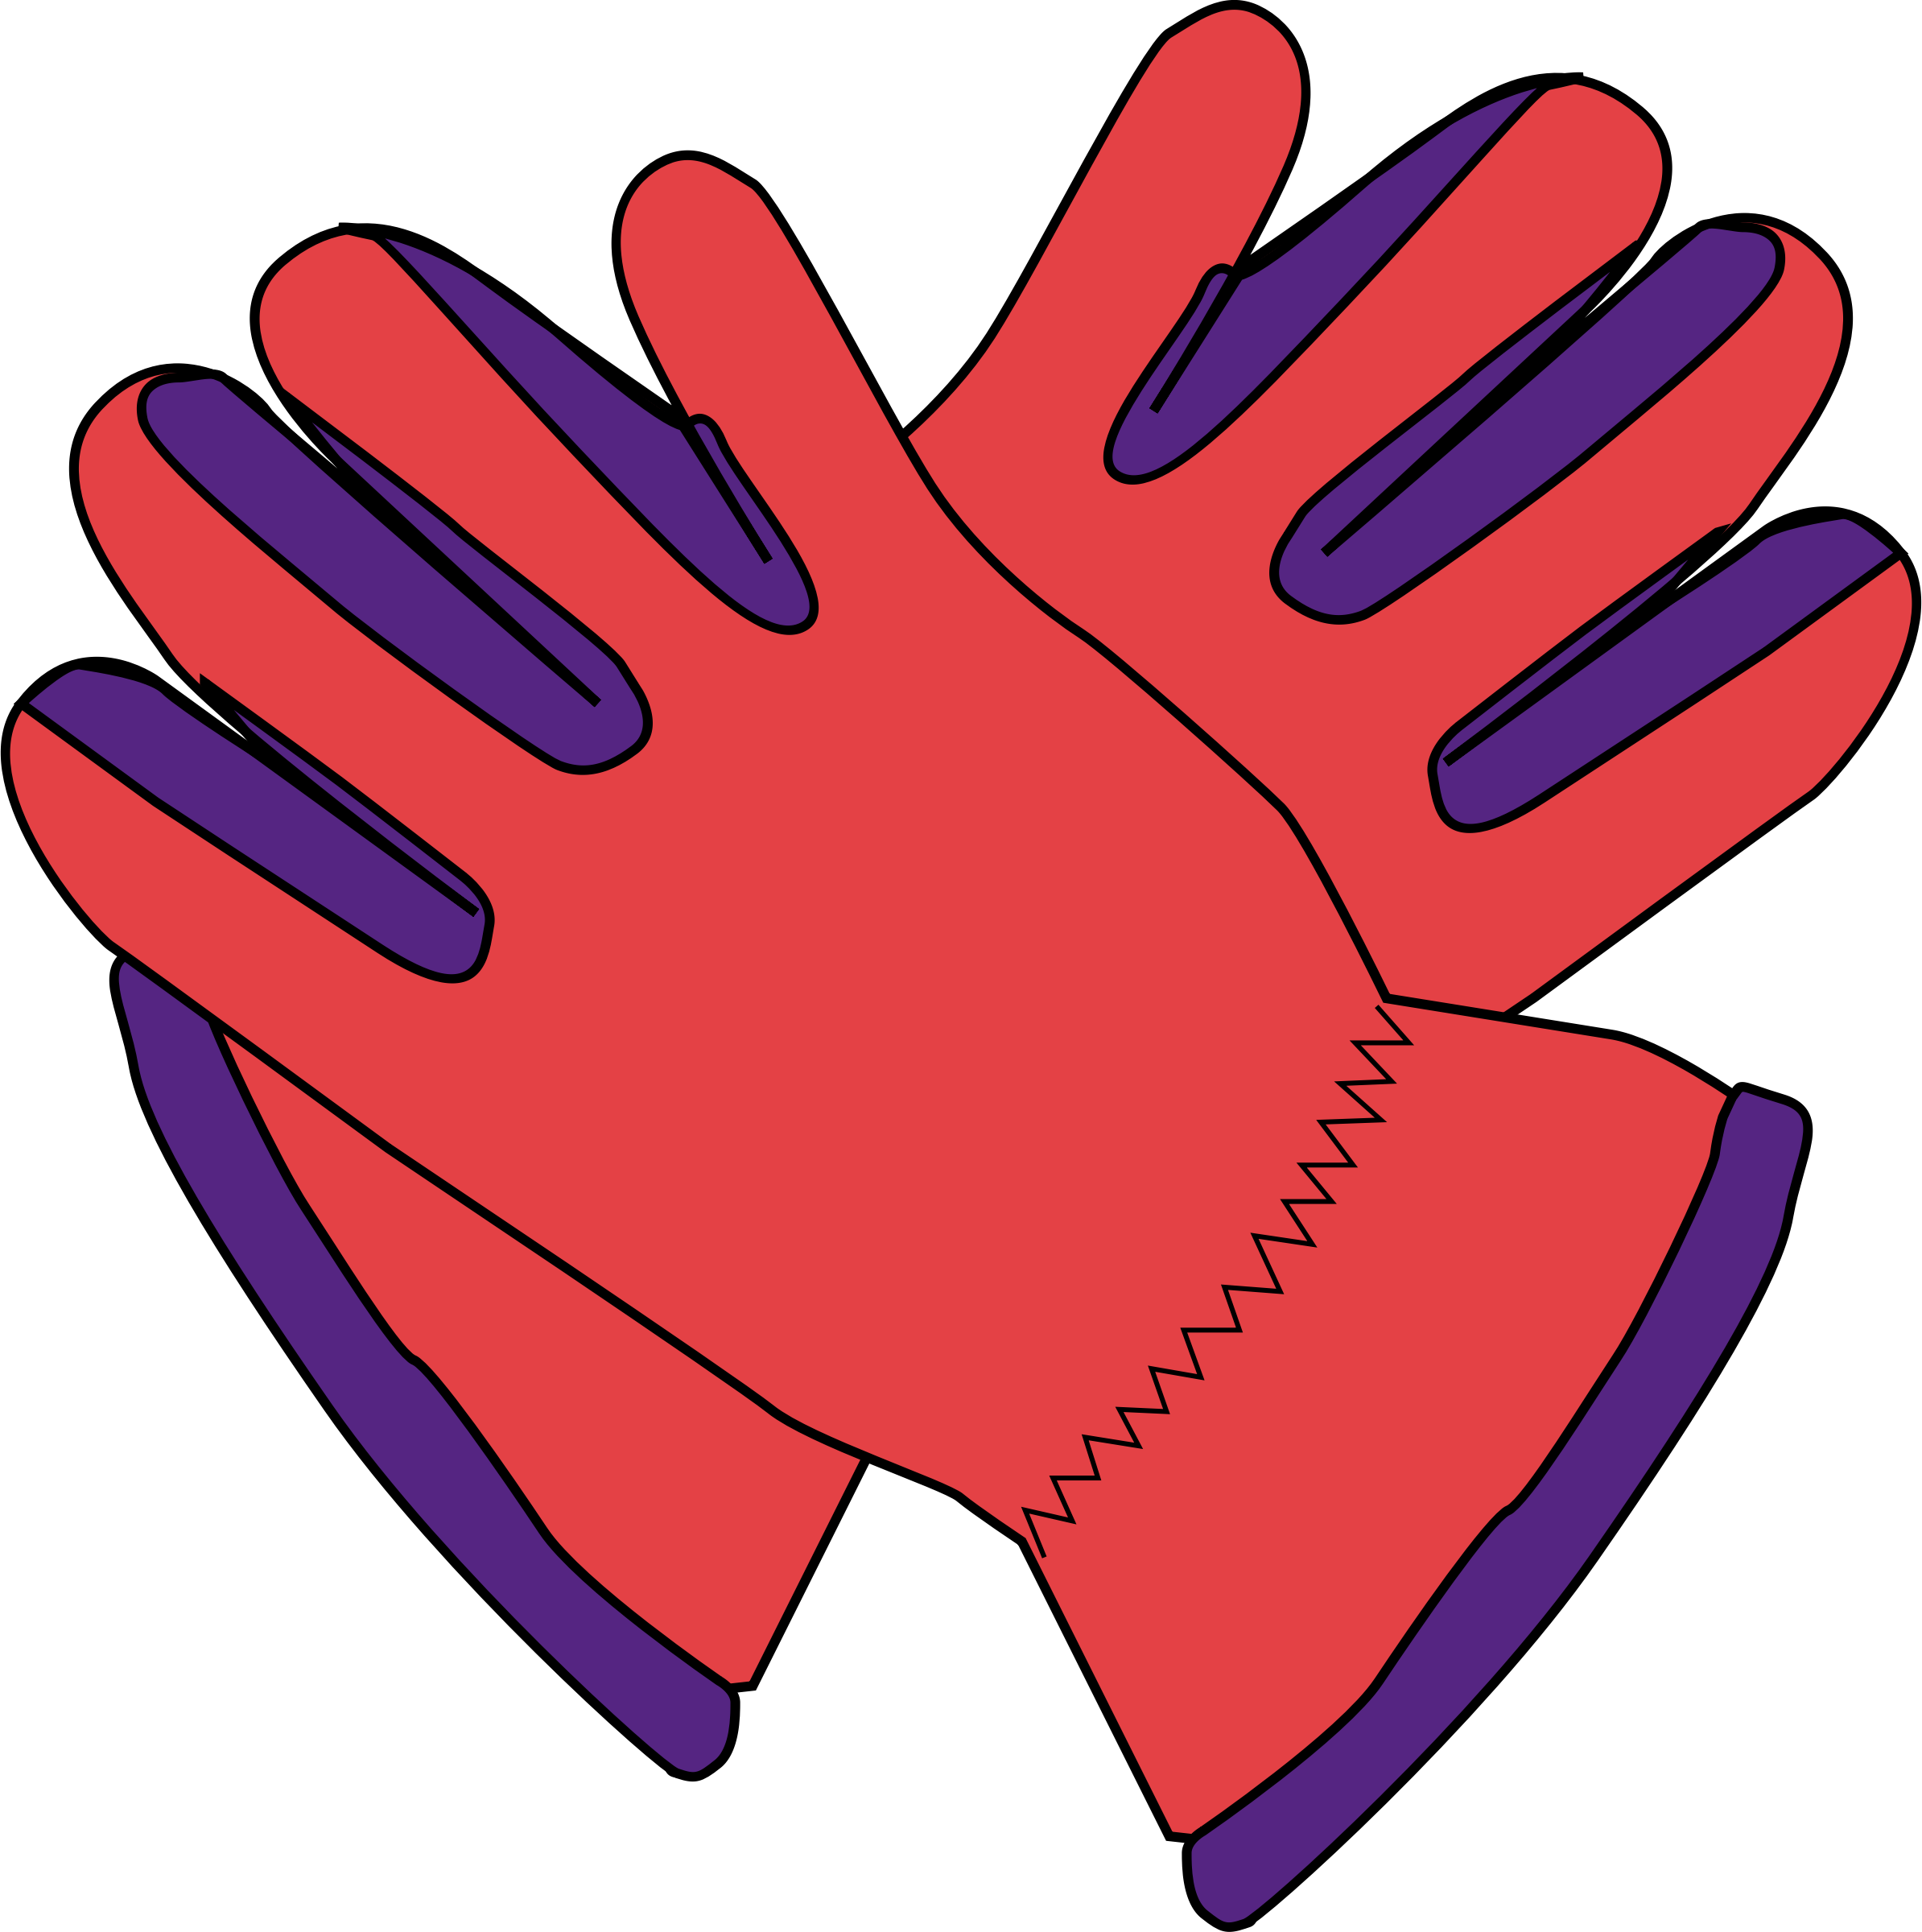 Mitten clipart accessory. Gloves big image png